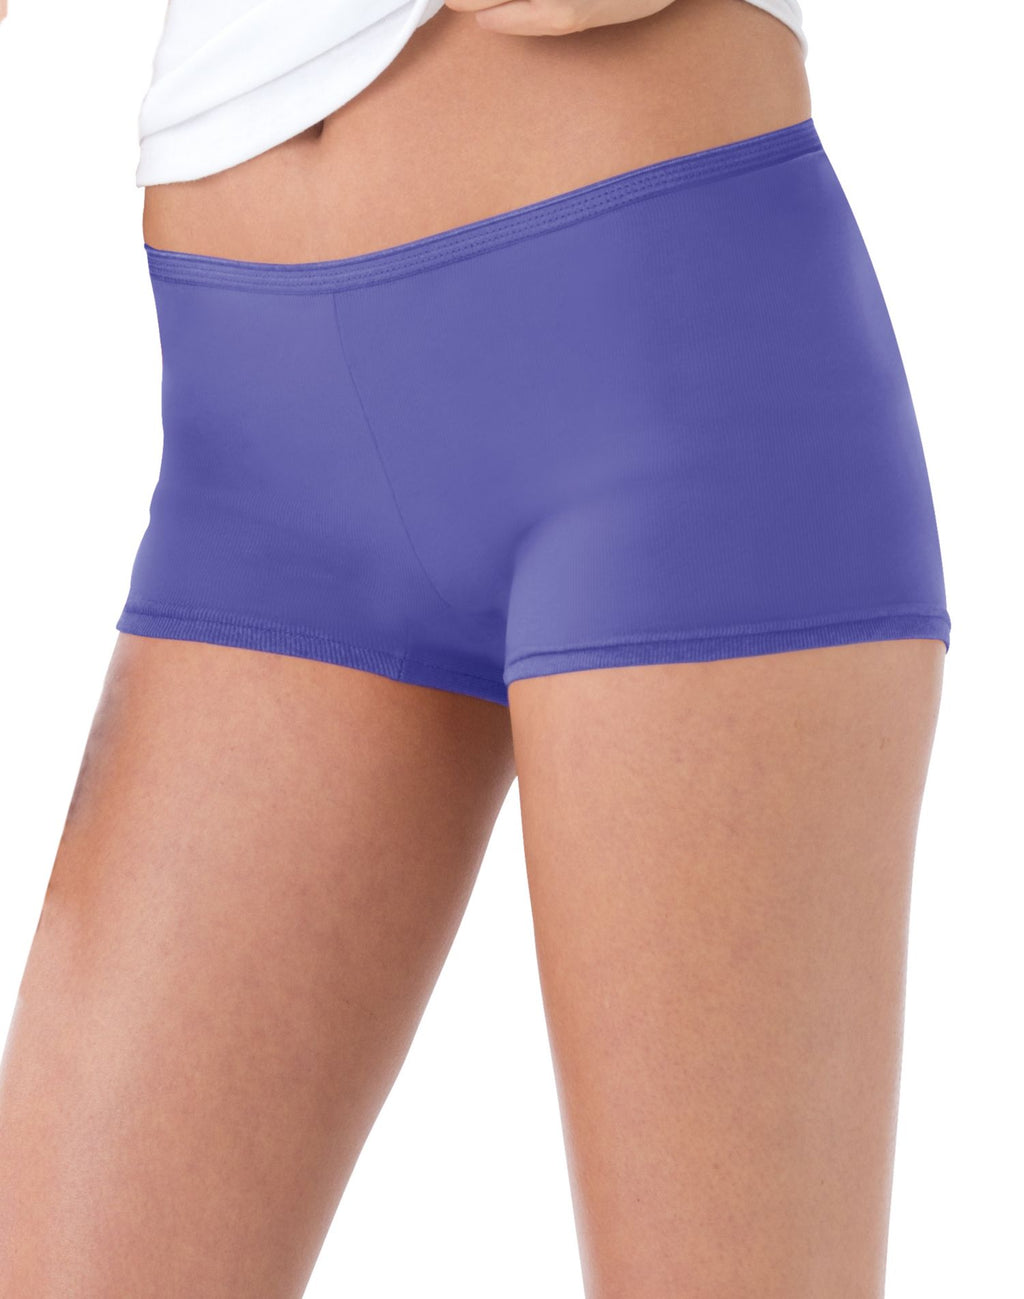 Hanes Women`s Cotton Boy Brief Panties